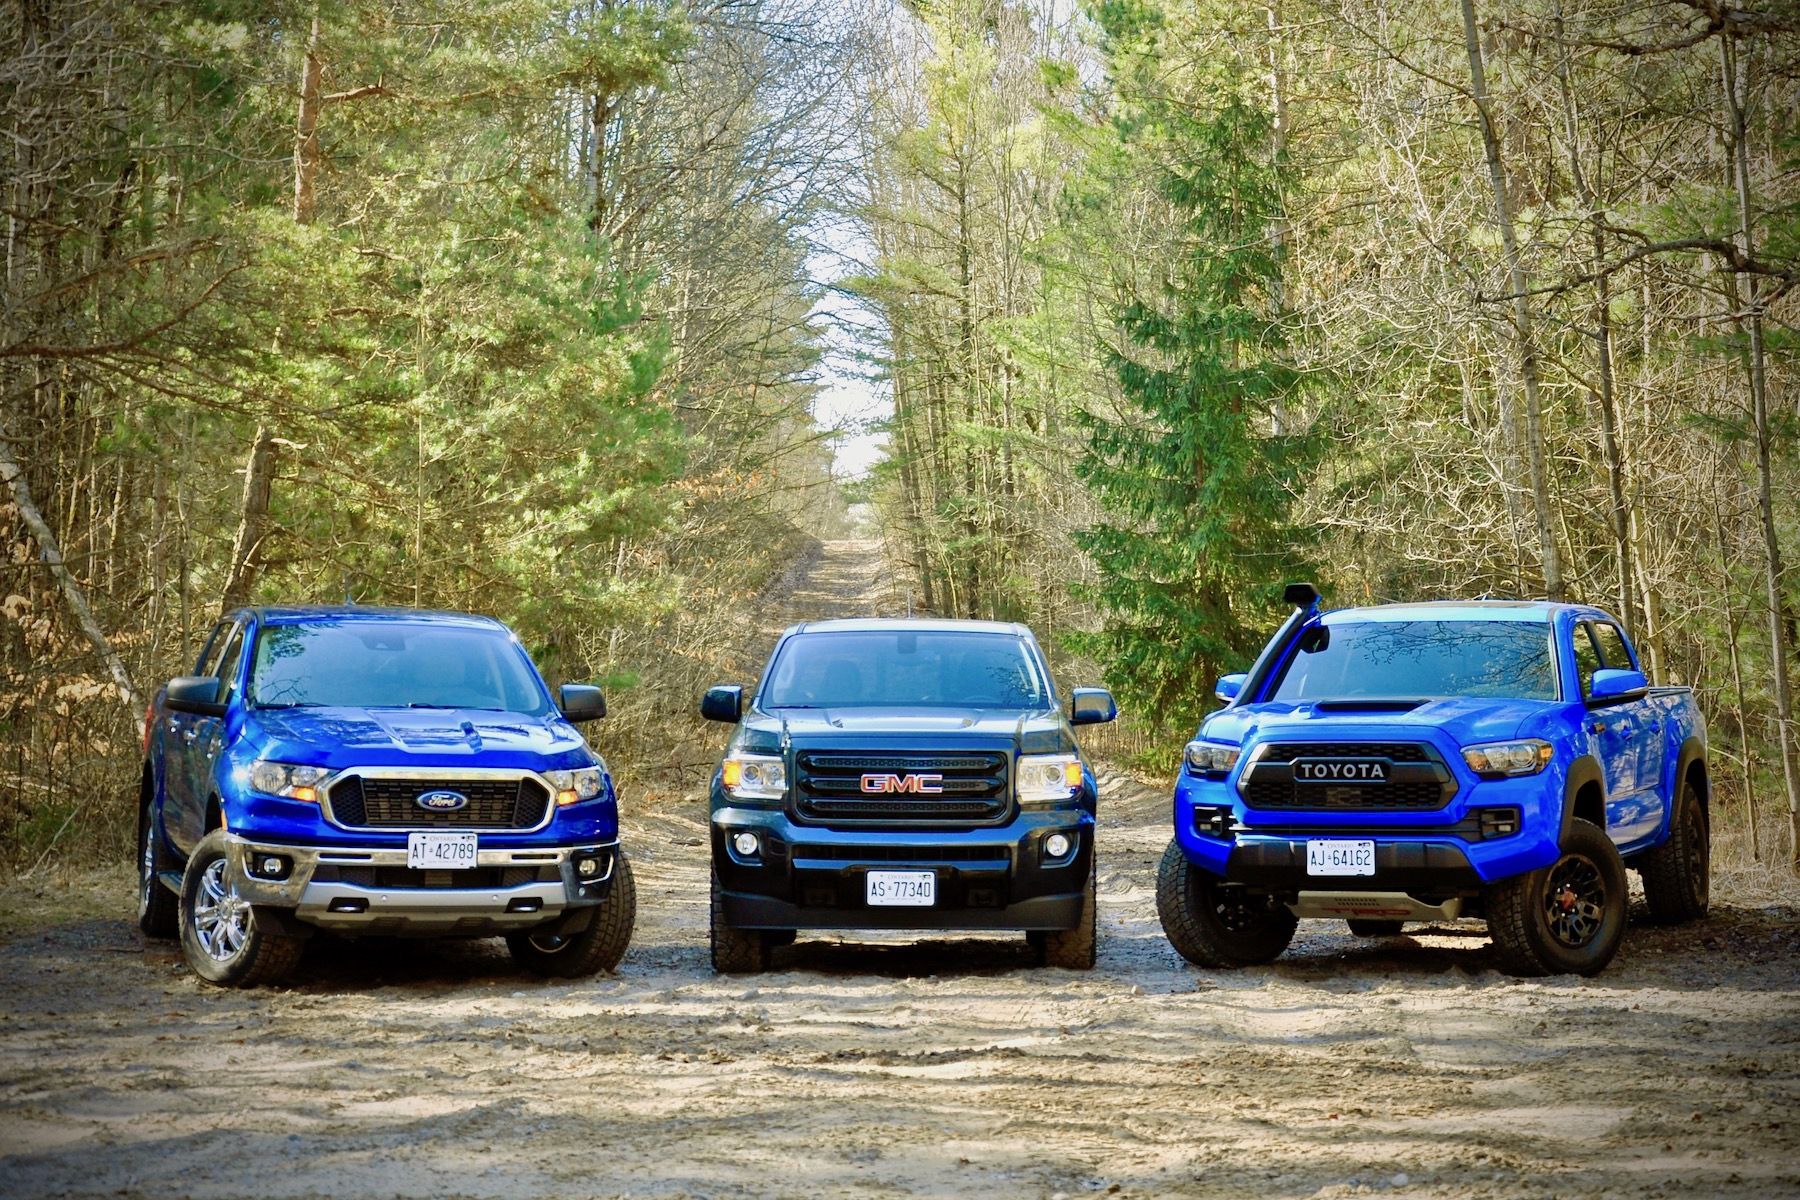 car comparisons, 2019 Ford Ranger vs. GMC Canyon, Toyota Tacoma